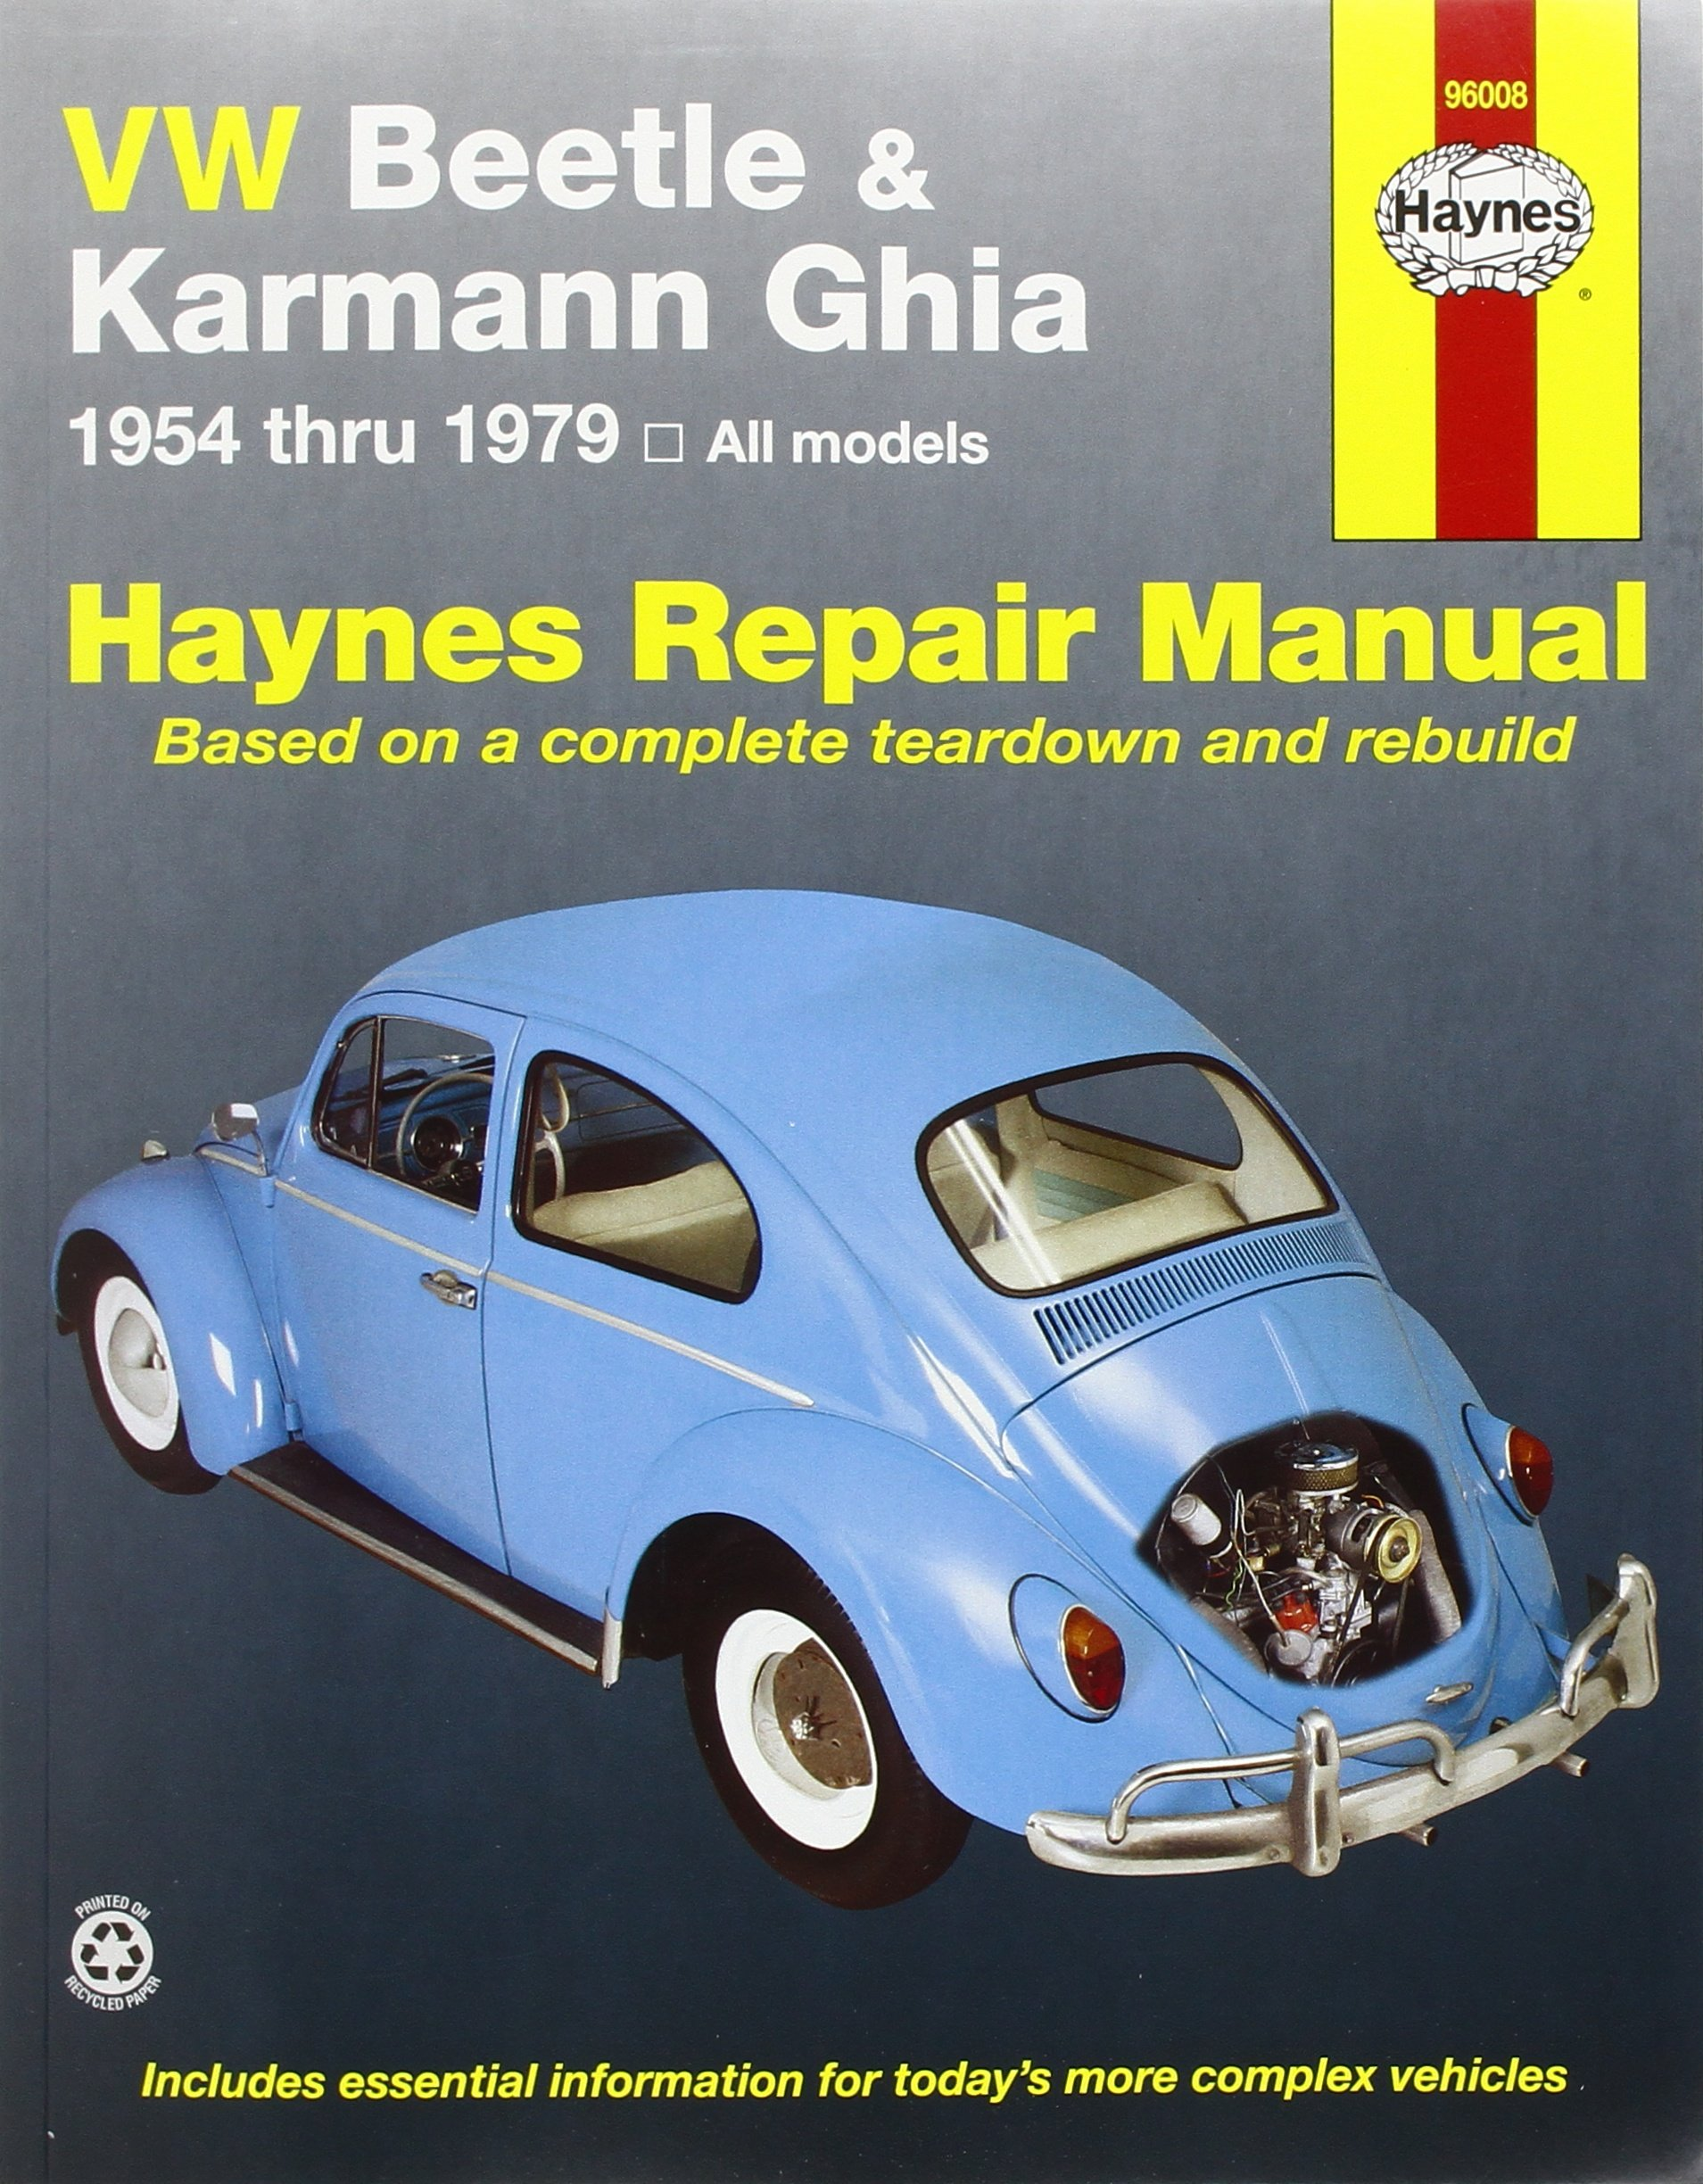 VW Beetle & Karmann Ghia 1954 through 1979 All Models (Haynes Repair Manual):  Ken Freund, Mike Stubblefield, John H. Haynes: 0038345001598: Amazon.com:  ...